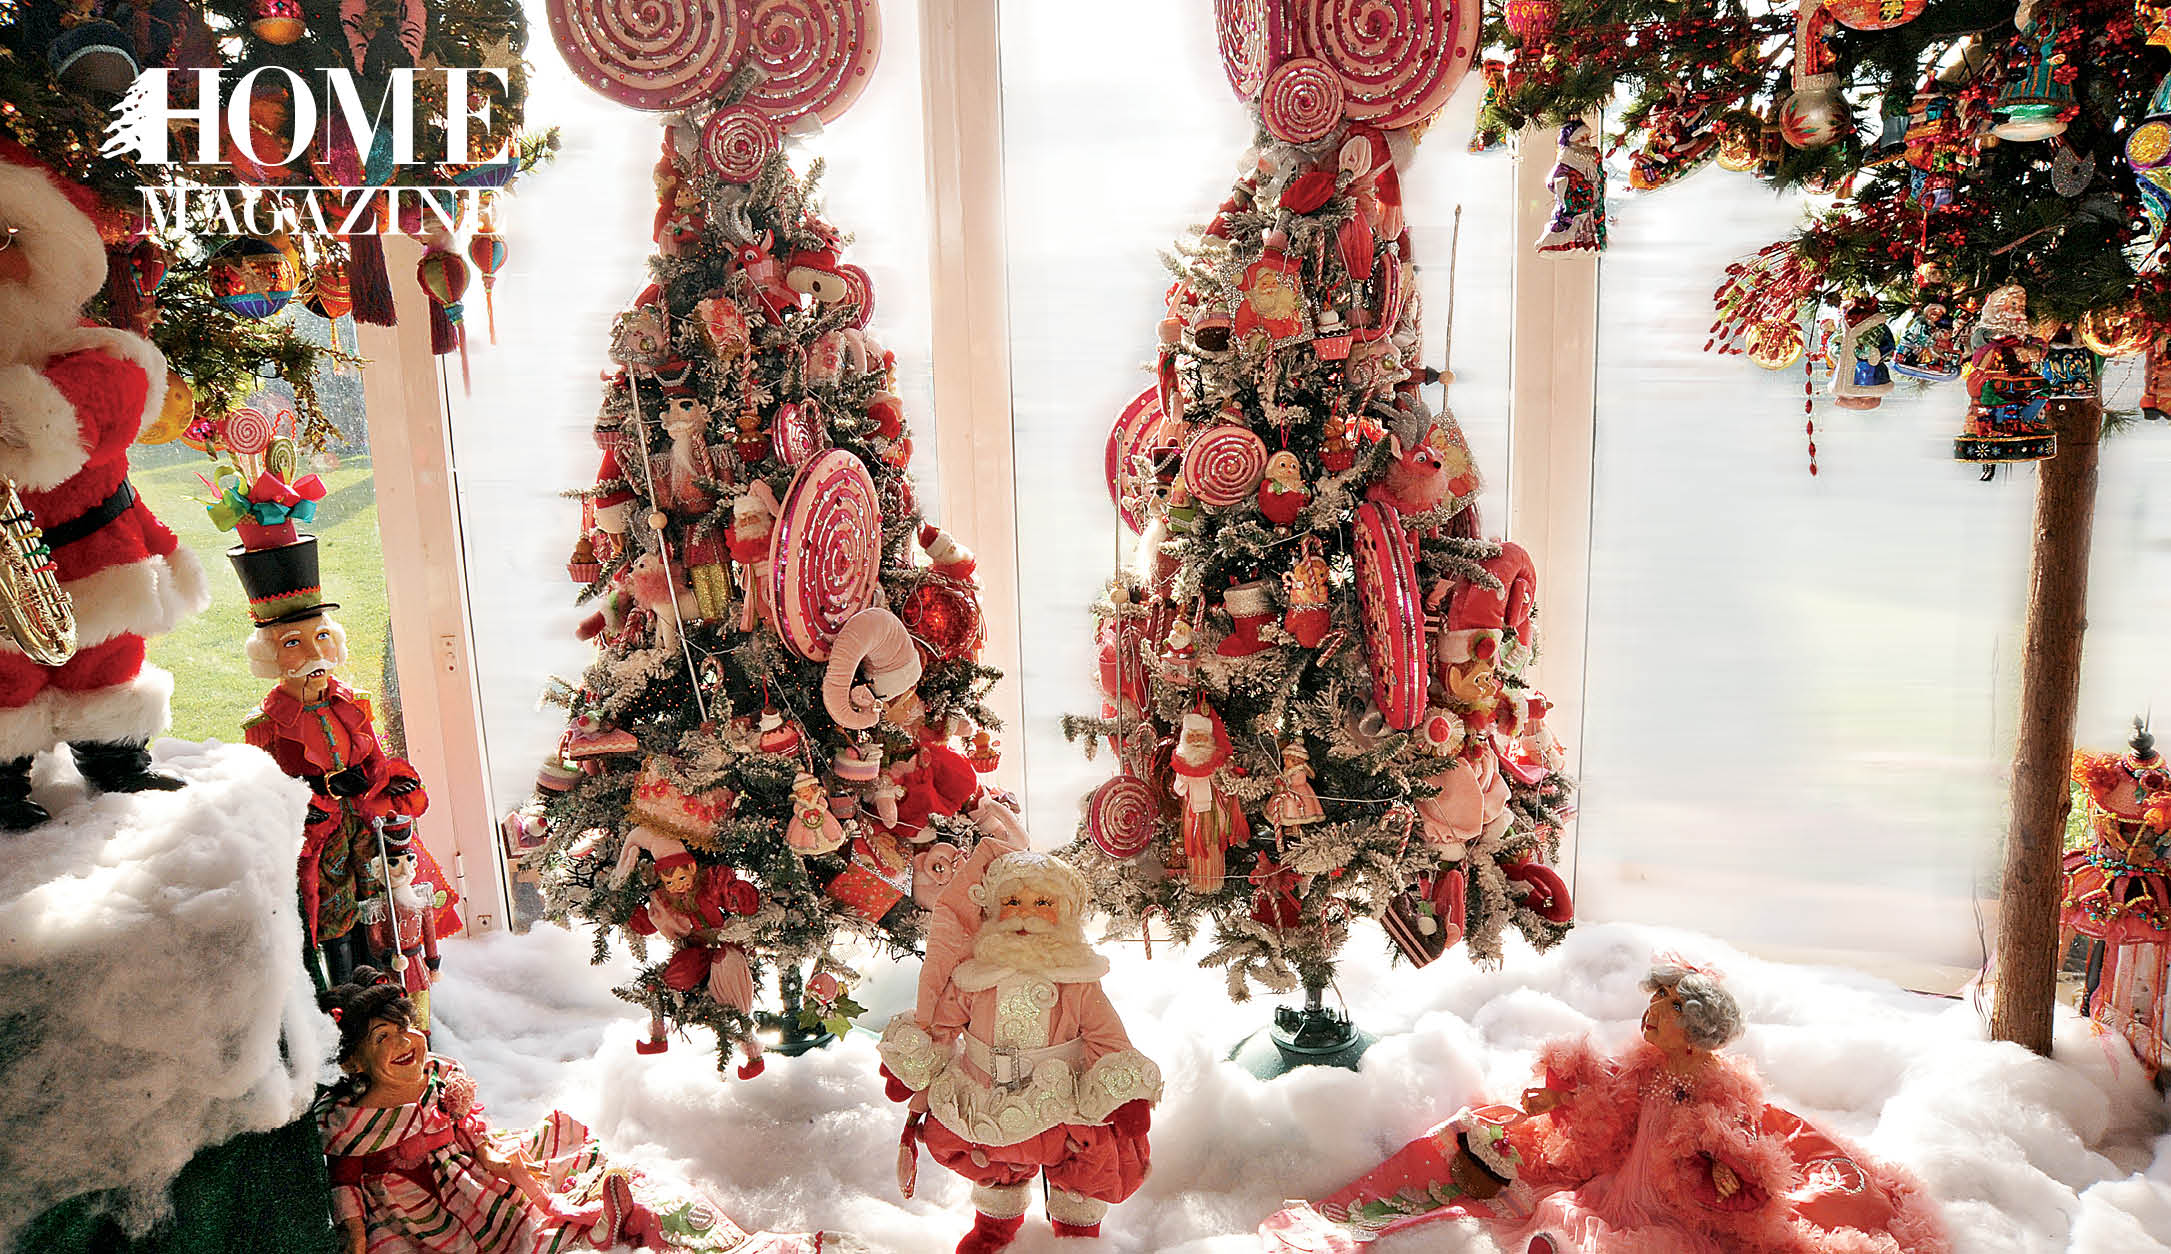 Christmas trees with red decorations